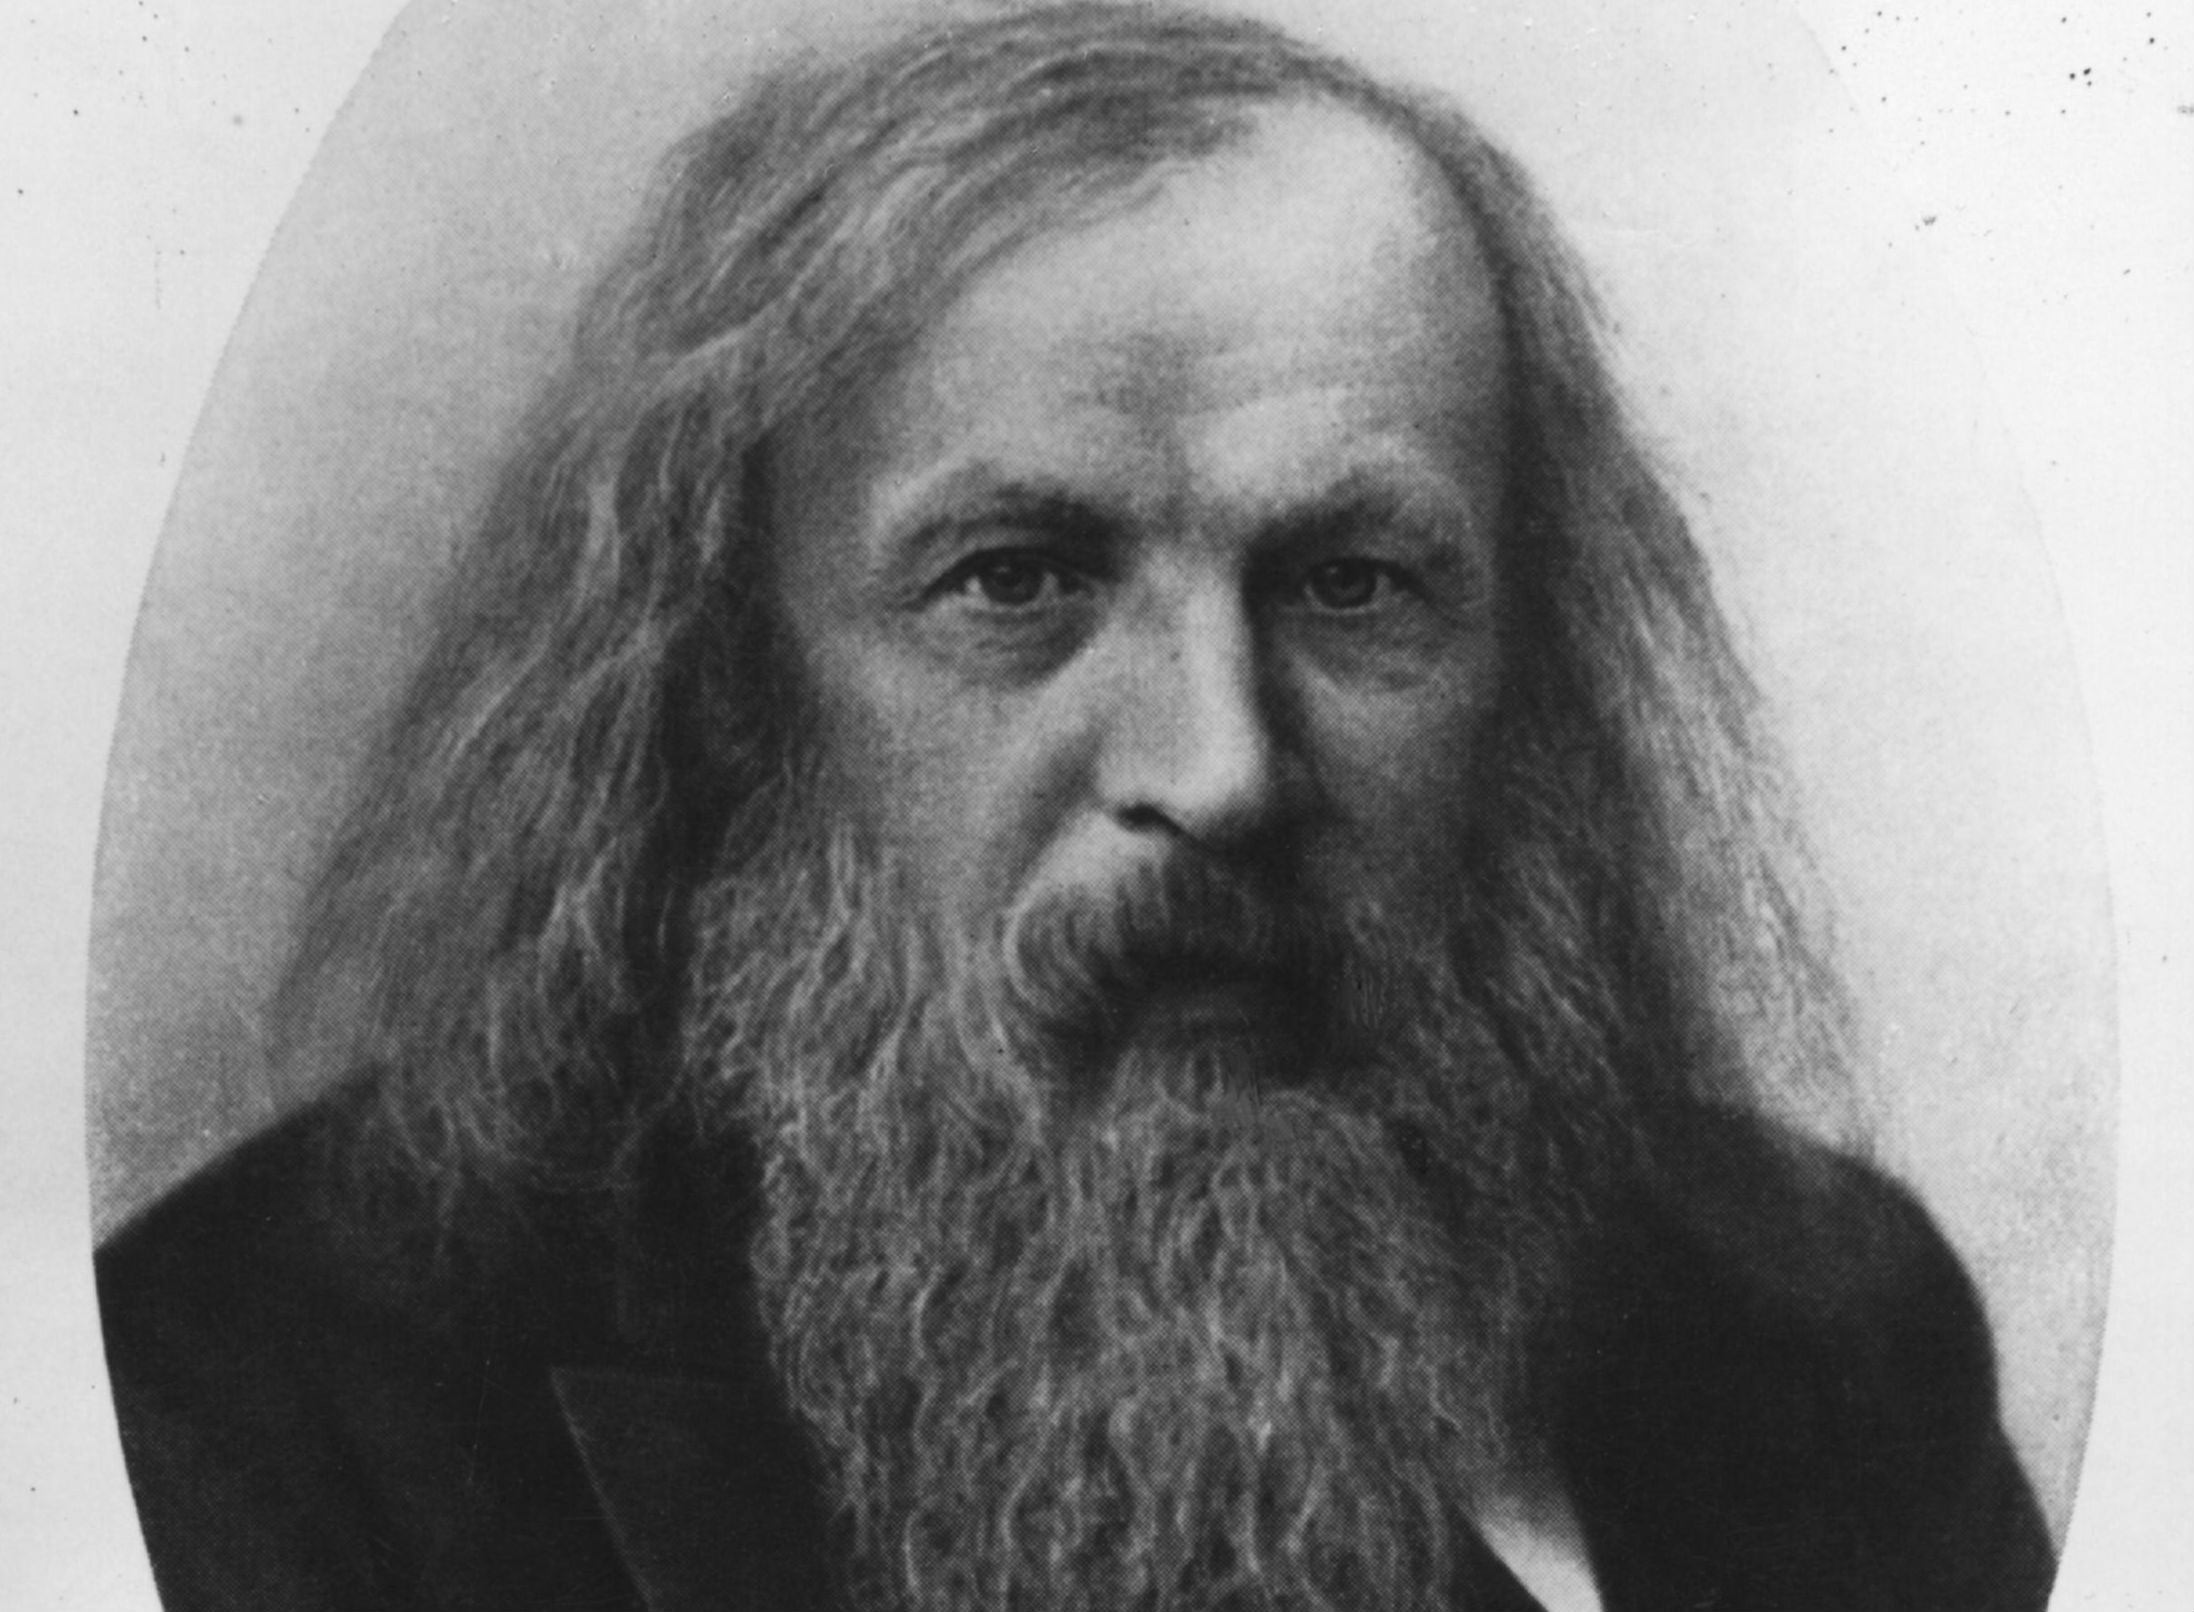 Dmitri mendeleev profile google doodle marks the 182nd birthday dmitri mendeleev profile google doodle marks the 182nd birthday of the man who invented the periodic table the independent gamestrikefo Image collections